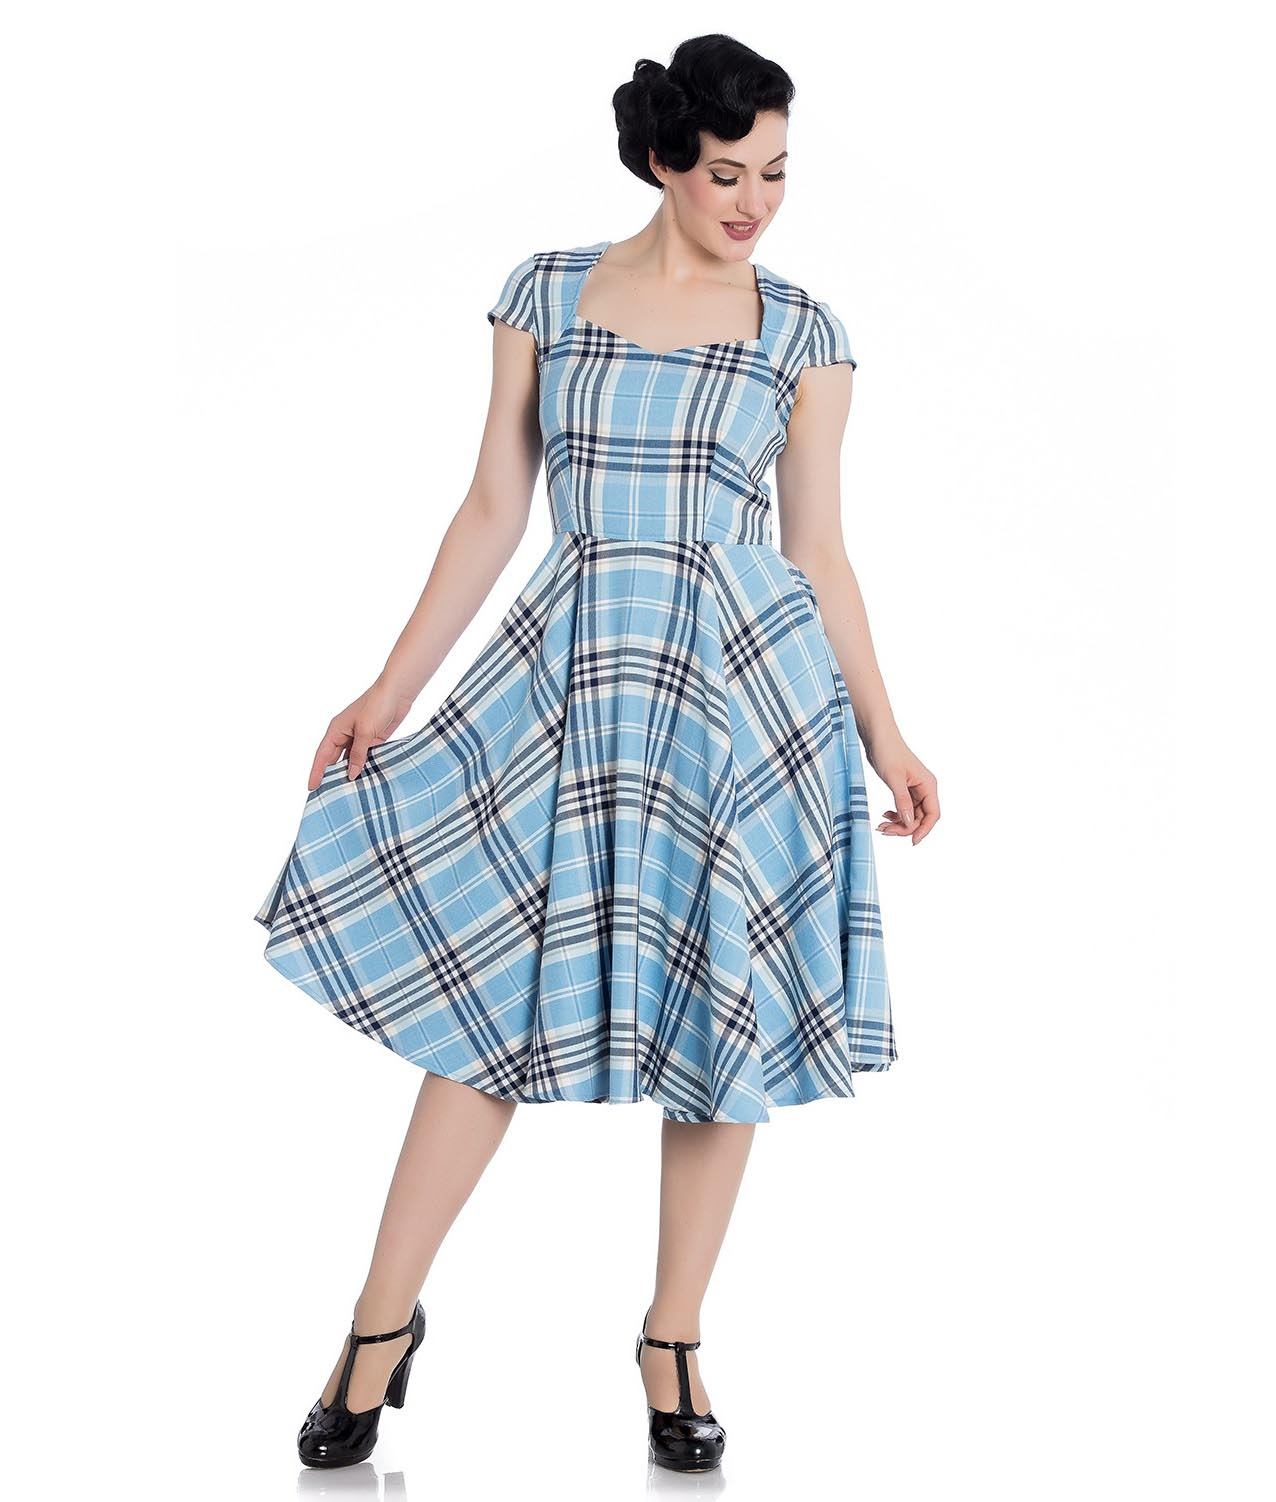 Hell-Bunny-Pinup-50s-Dress-ABERDEEN-Hogmony-Sky-Blue-amp-White-Tartan-All-Sizes thumbnail 3